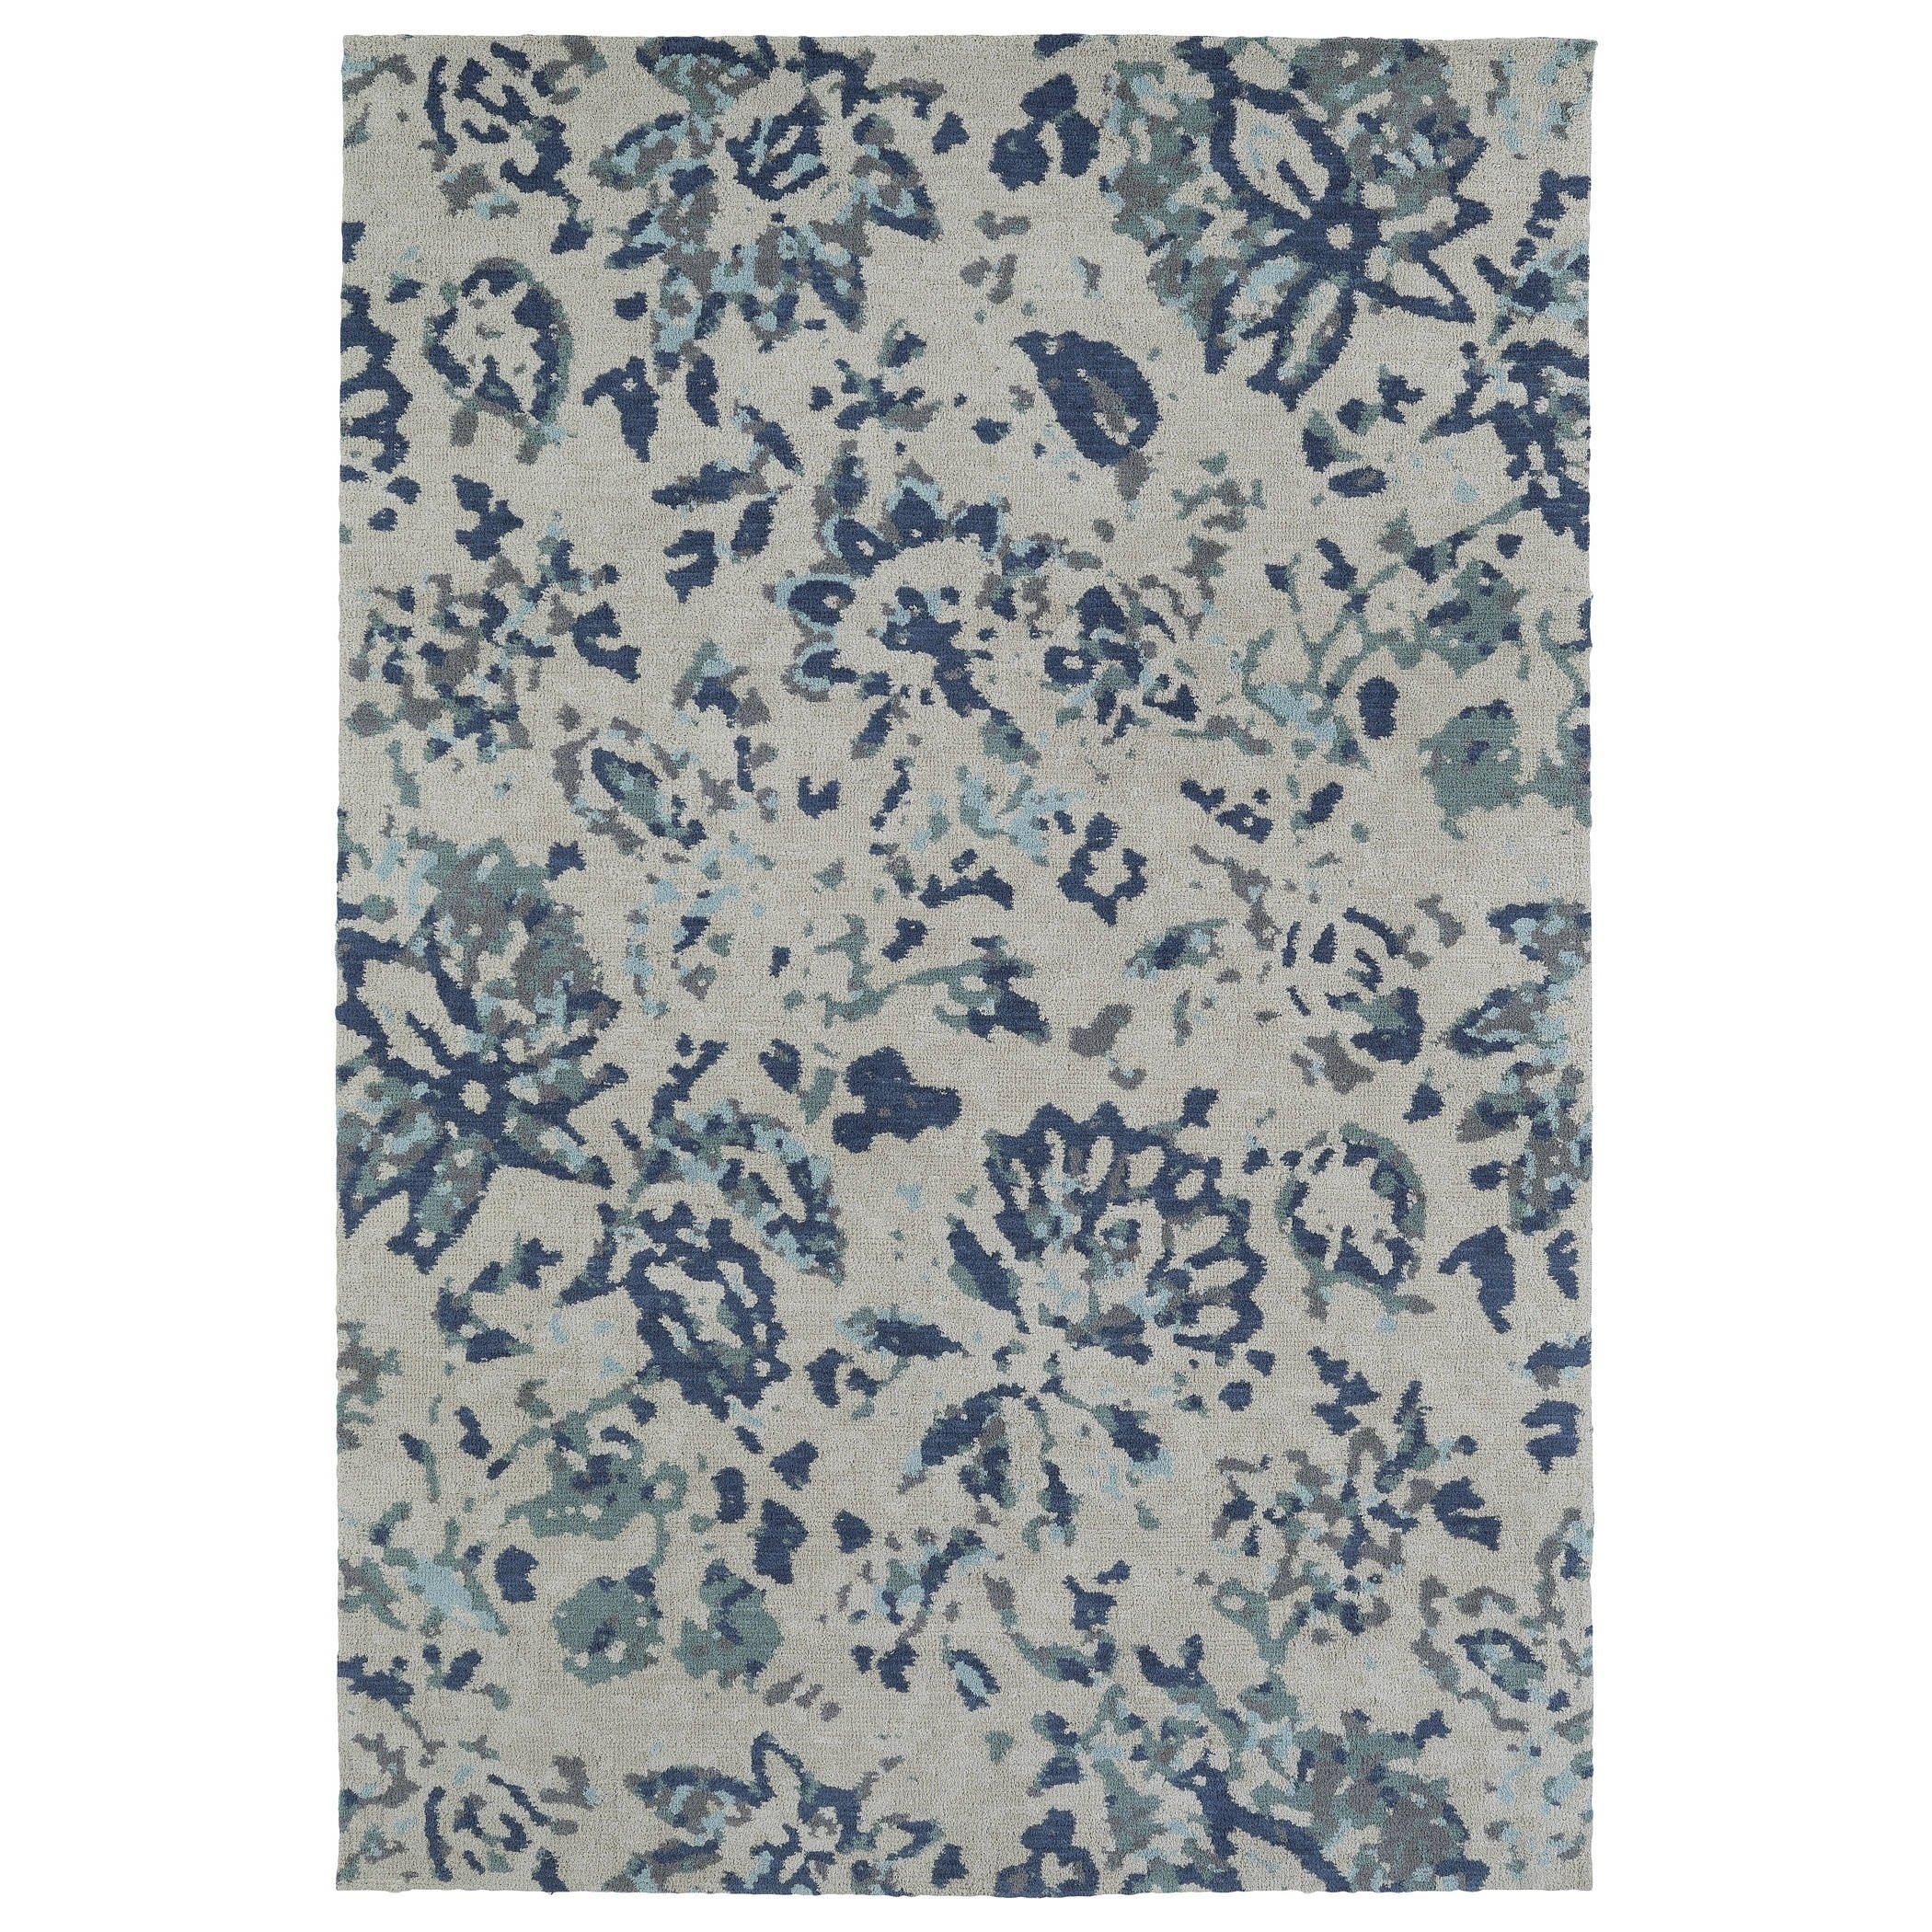 Kaleen Rugs Cozy Toes Collection CTC05-17 Blue Machine Tufted Rug, 9' x 12'